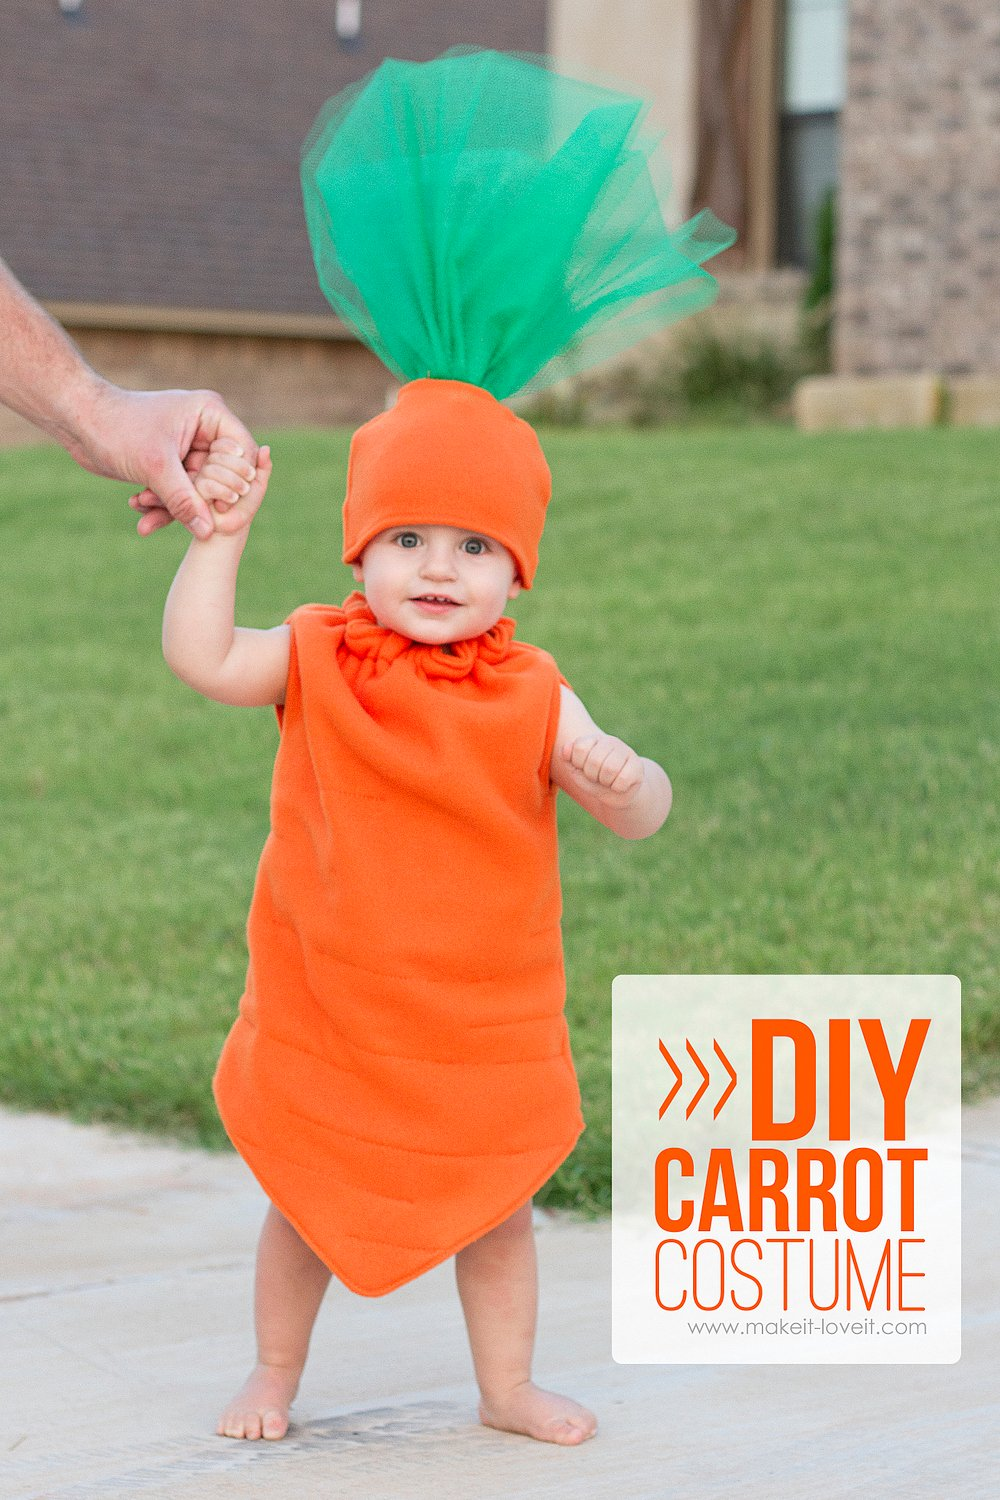 Diy carrot costume — fun for any age! (…plus, one to give away!)